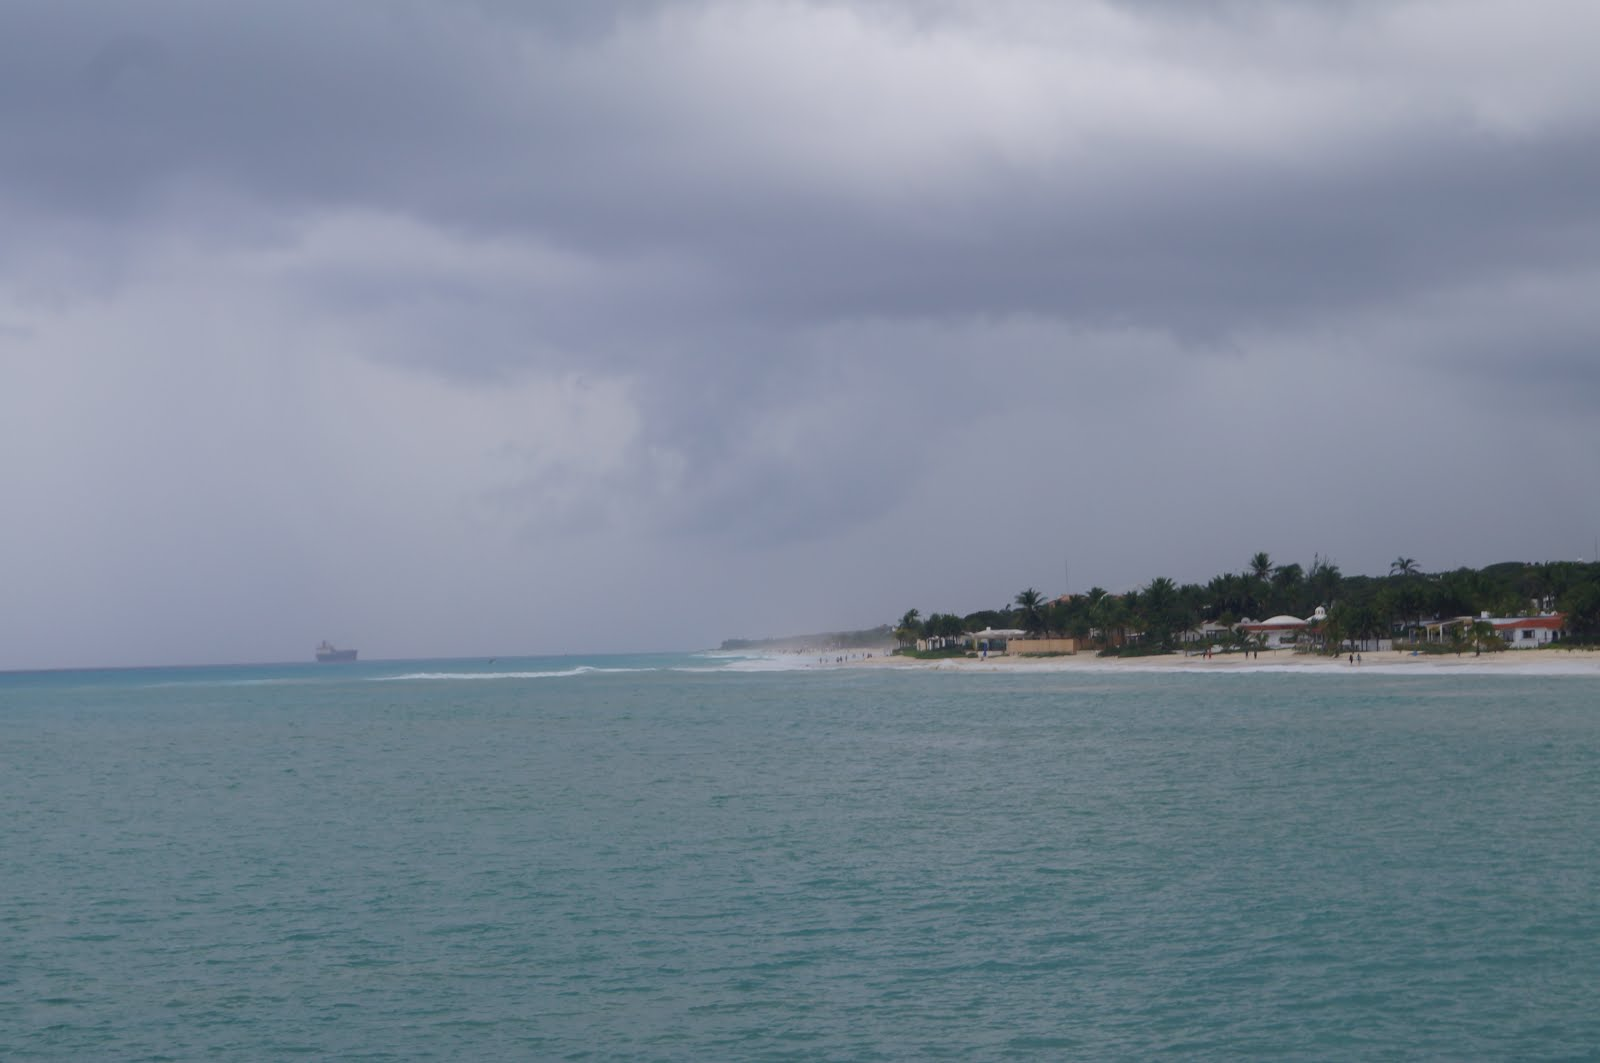 Leaving Playa del Carmen on Ferry to Cozumel in rain